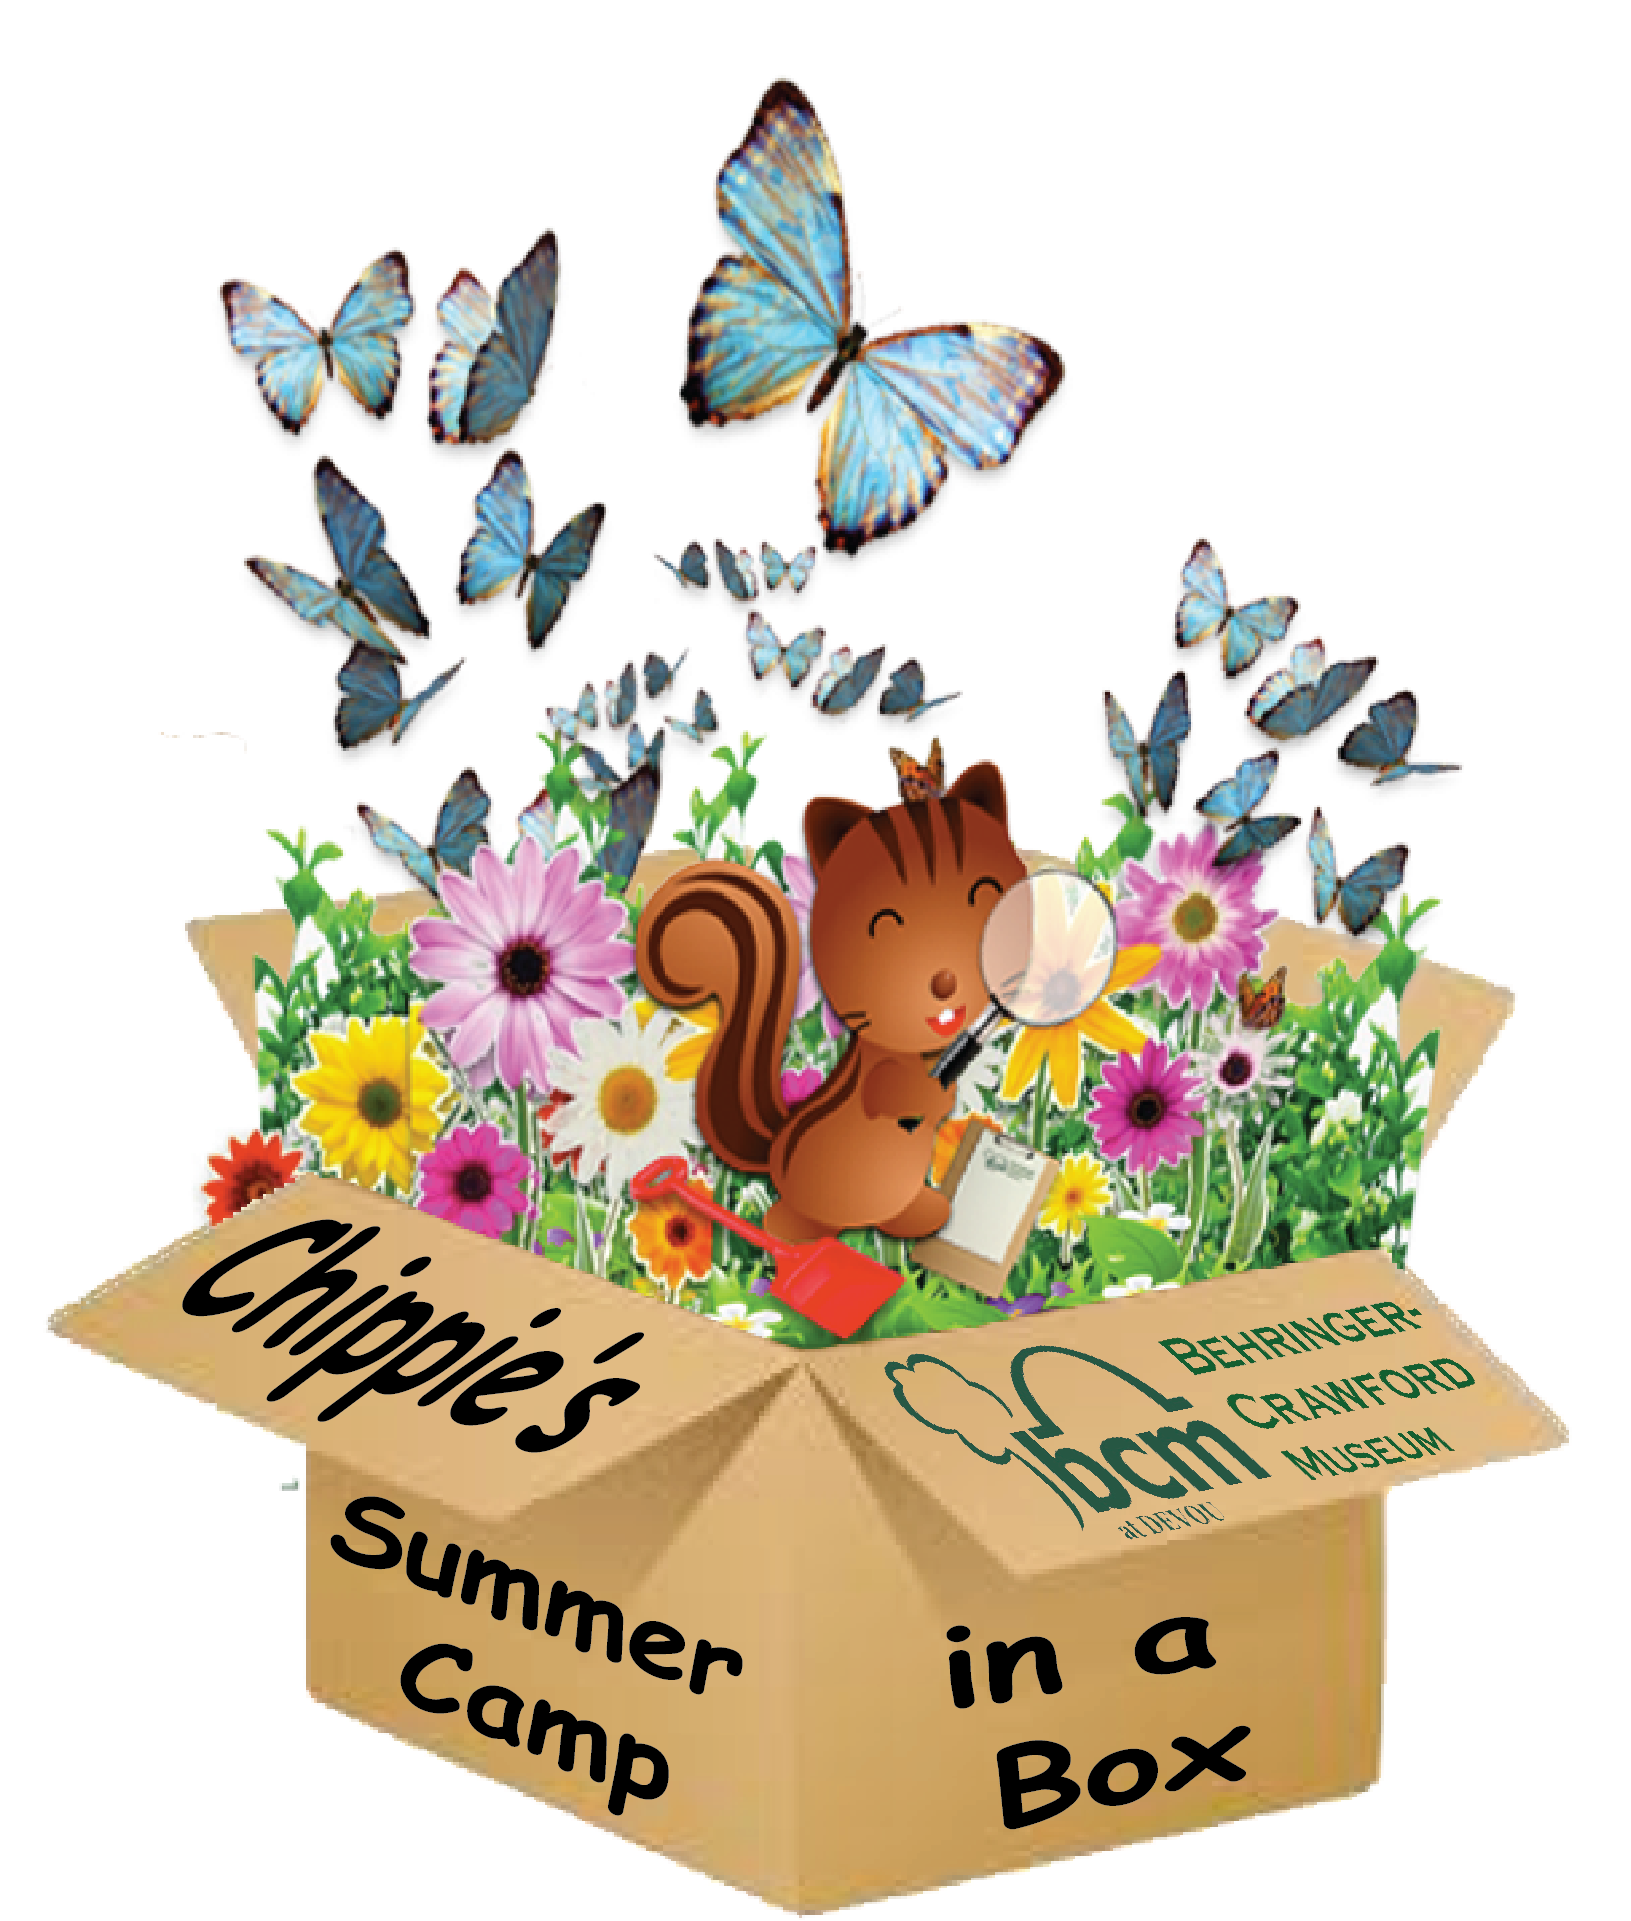 Chippie's Virtual Summer Camp-in-a-Box image